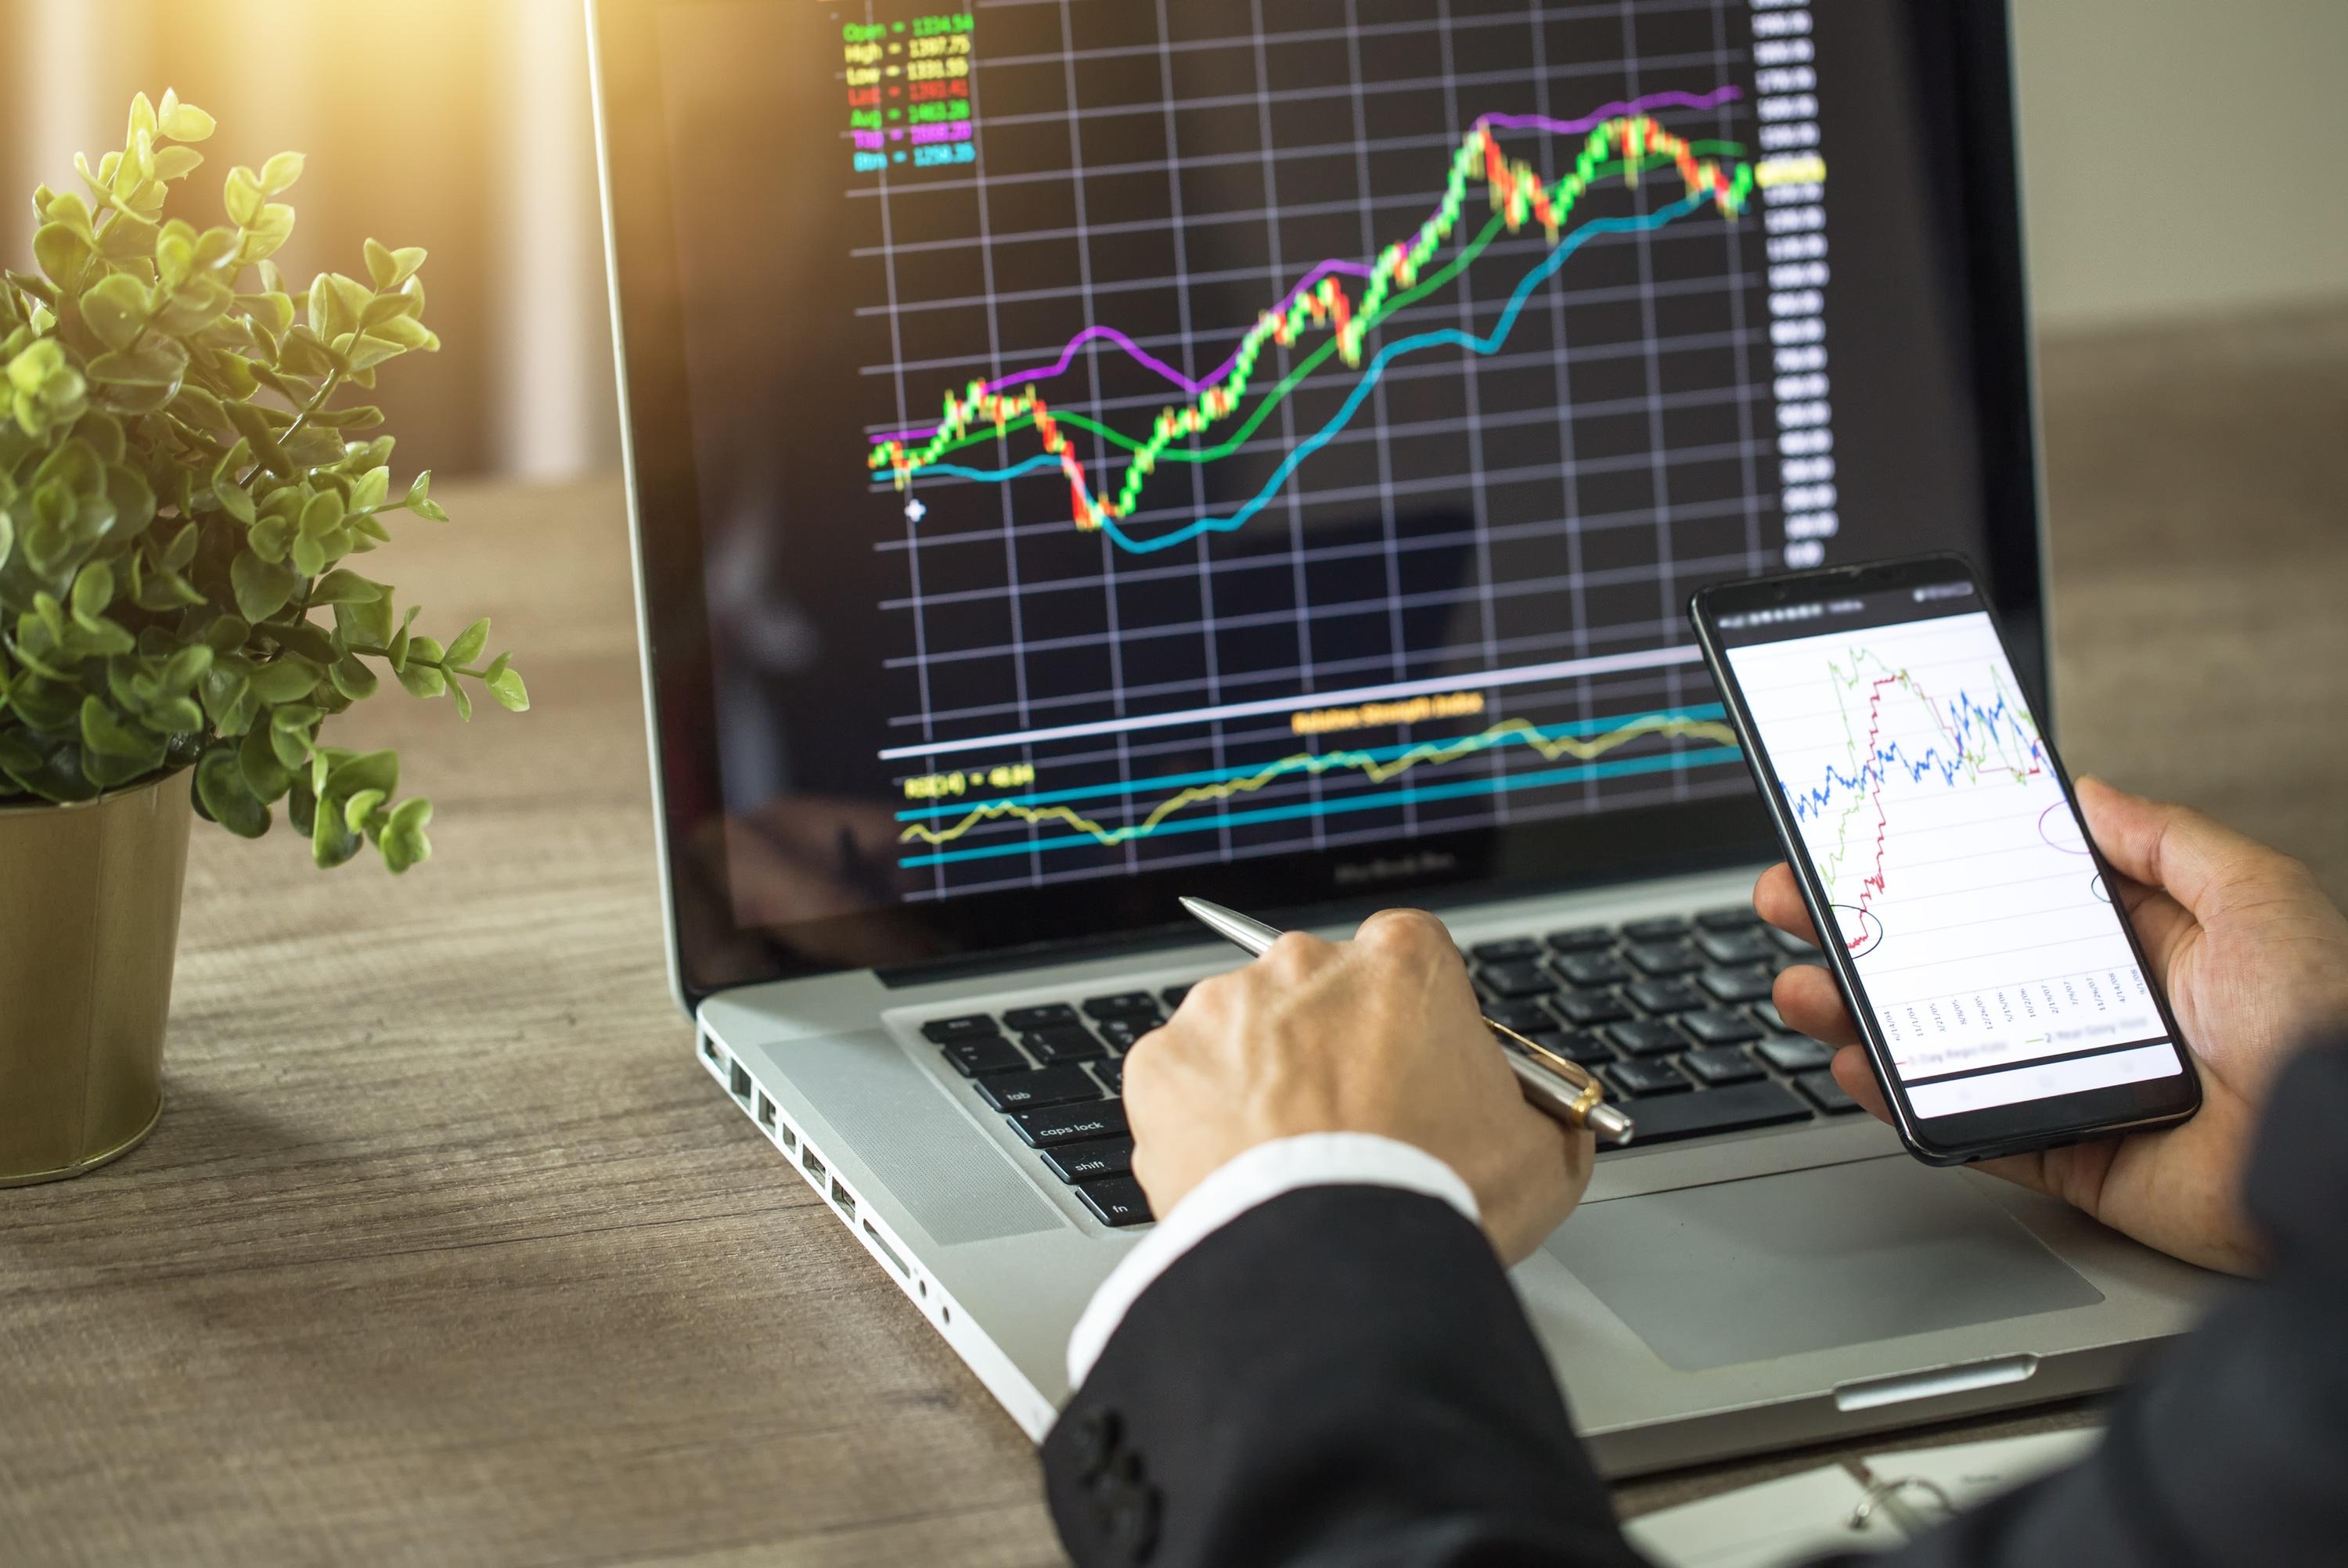 11 Best Online Brokers for Free Stock Trading ($0 Commissions)